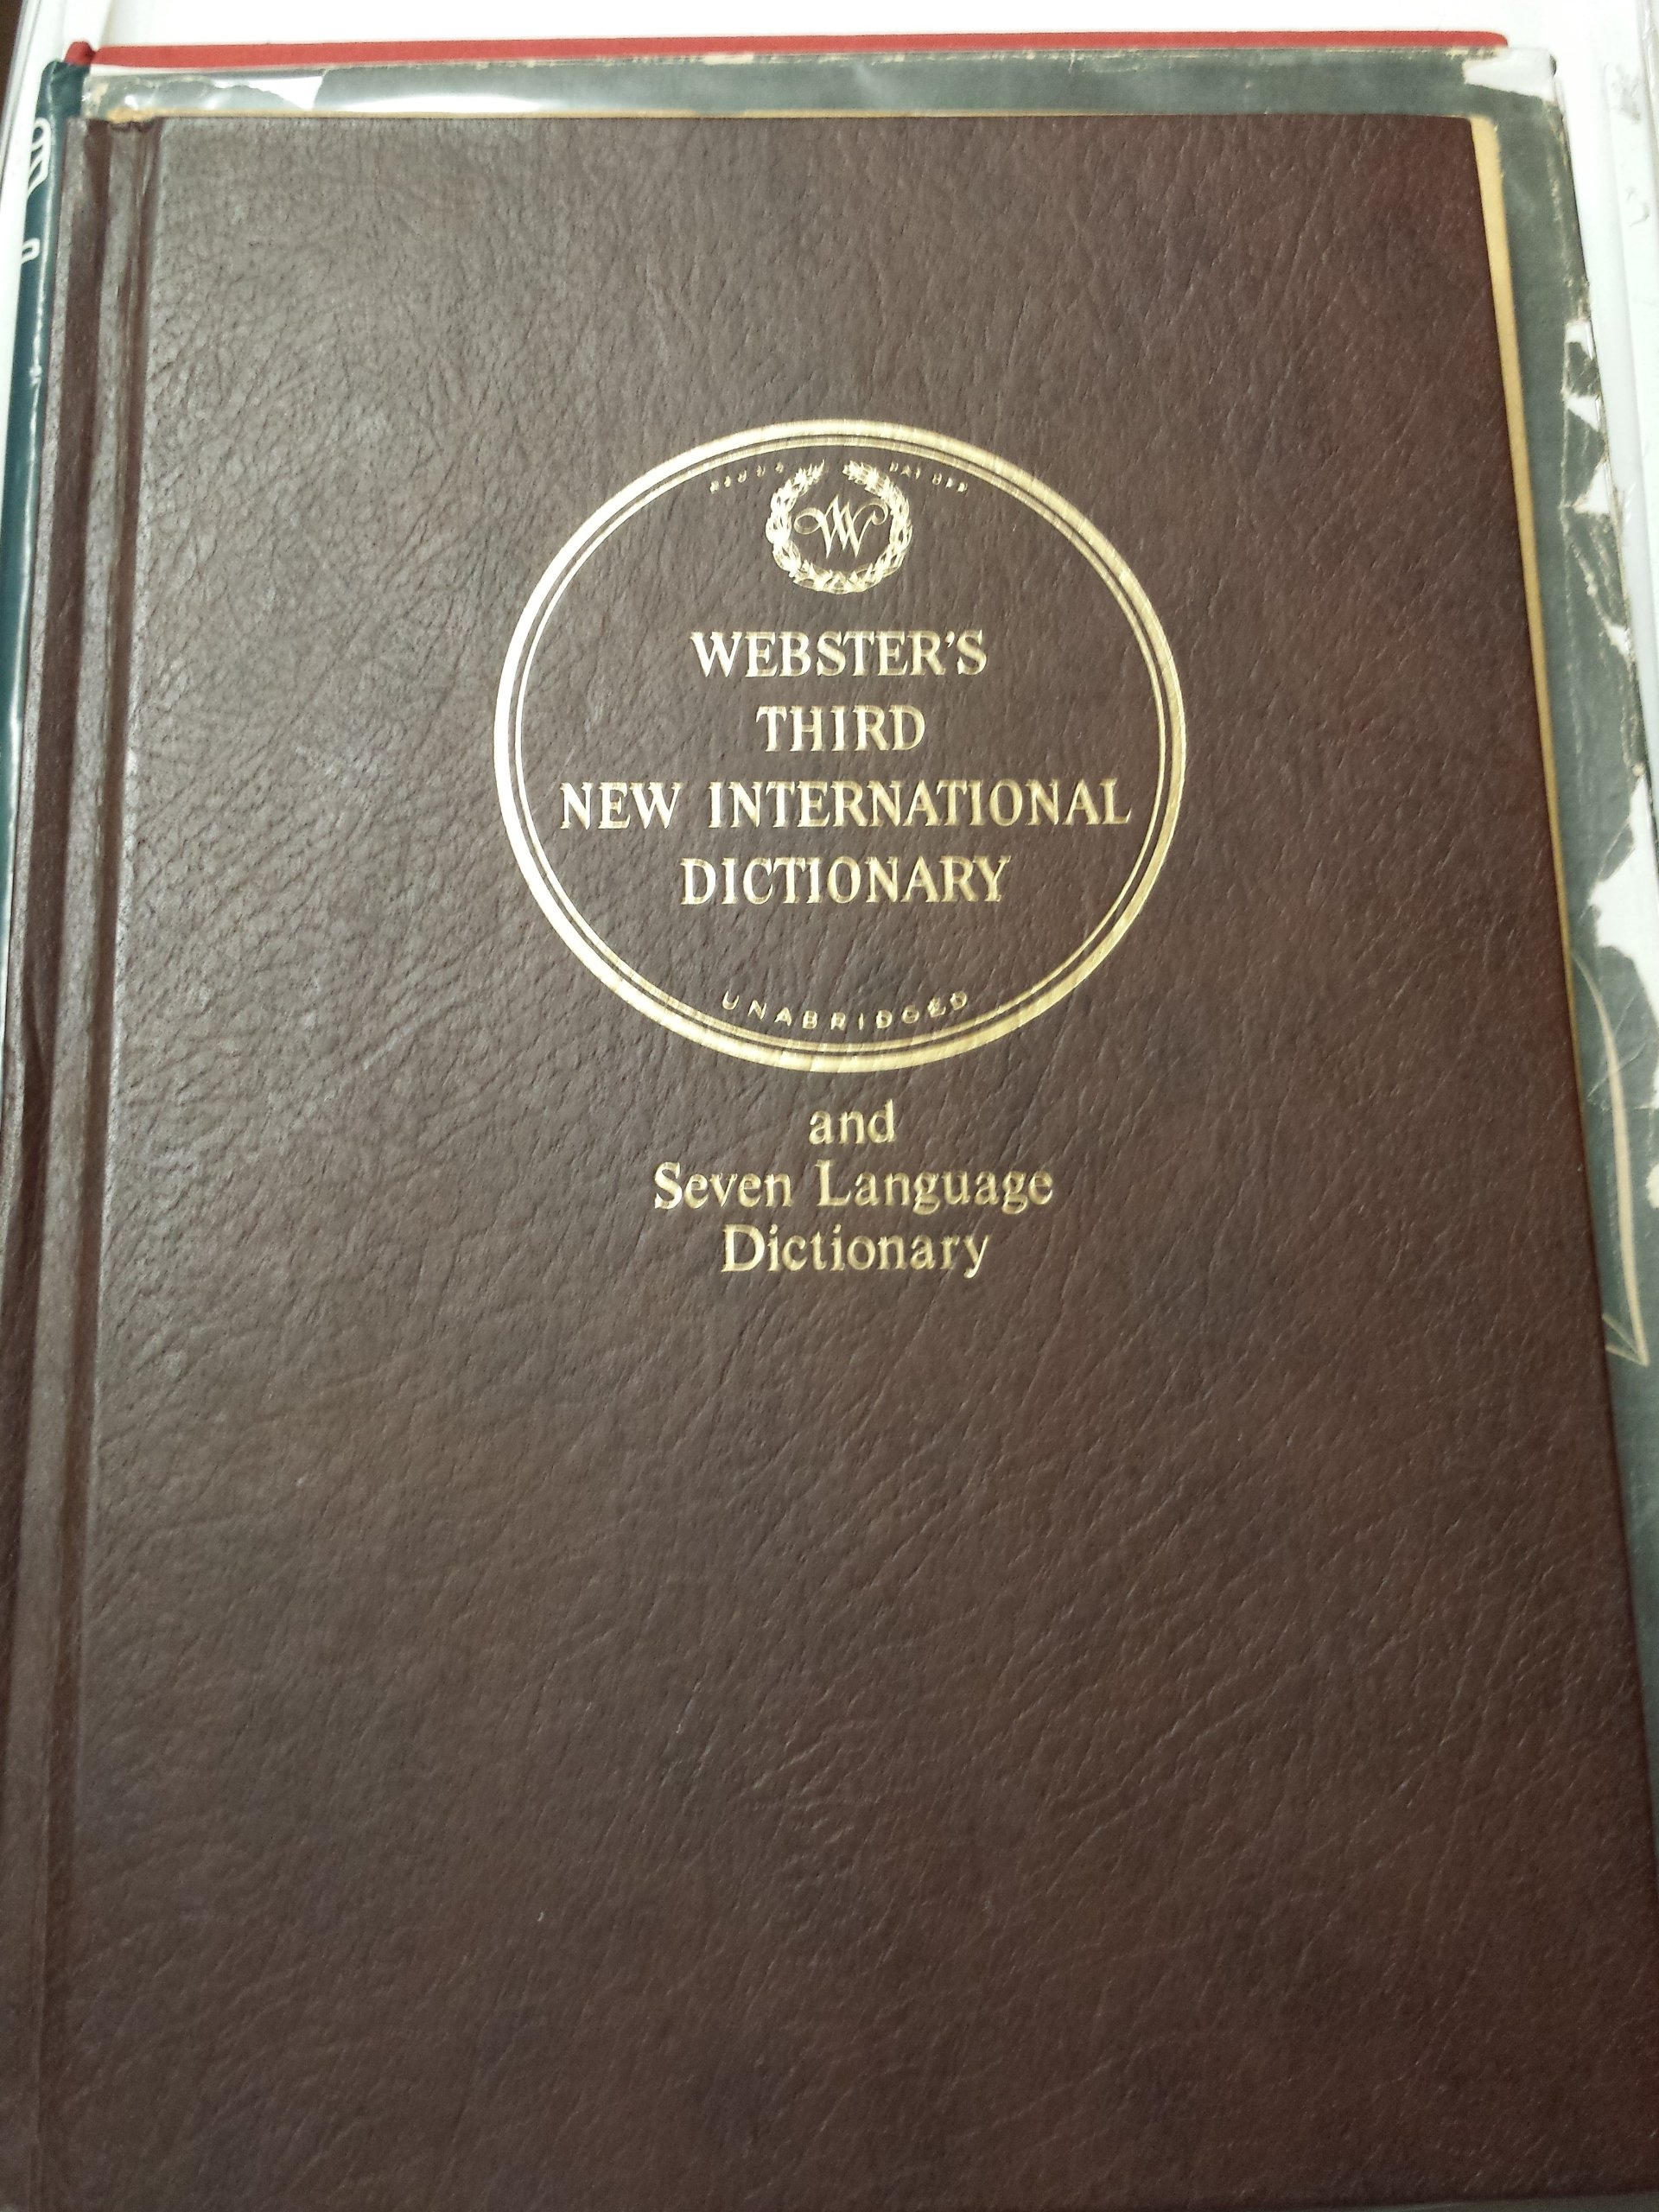 Webster's Third New International Dictionary of the English Language  Unabridged (With Seven Language Dictionary) A to G, Volume 1: A Merriam- Webster: ...